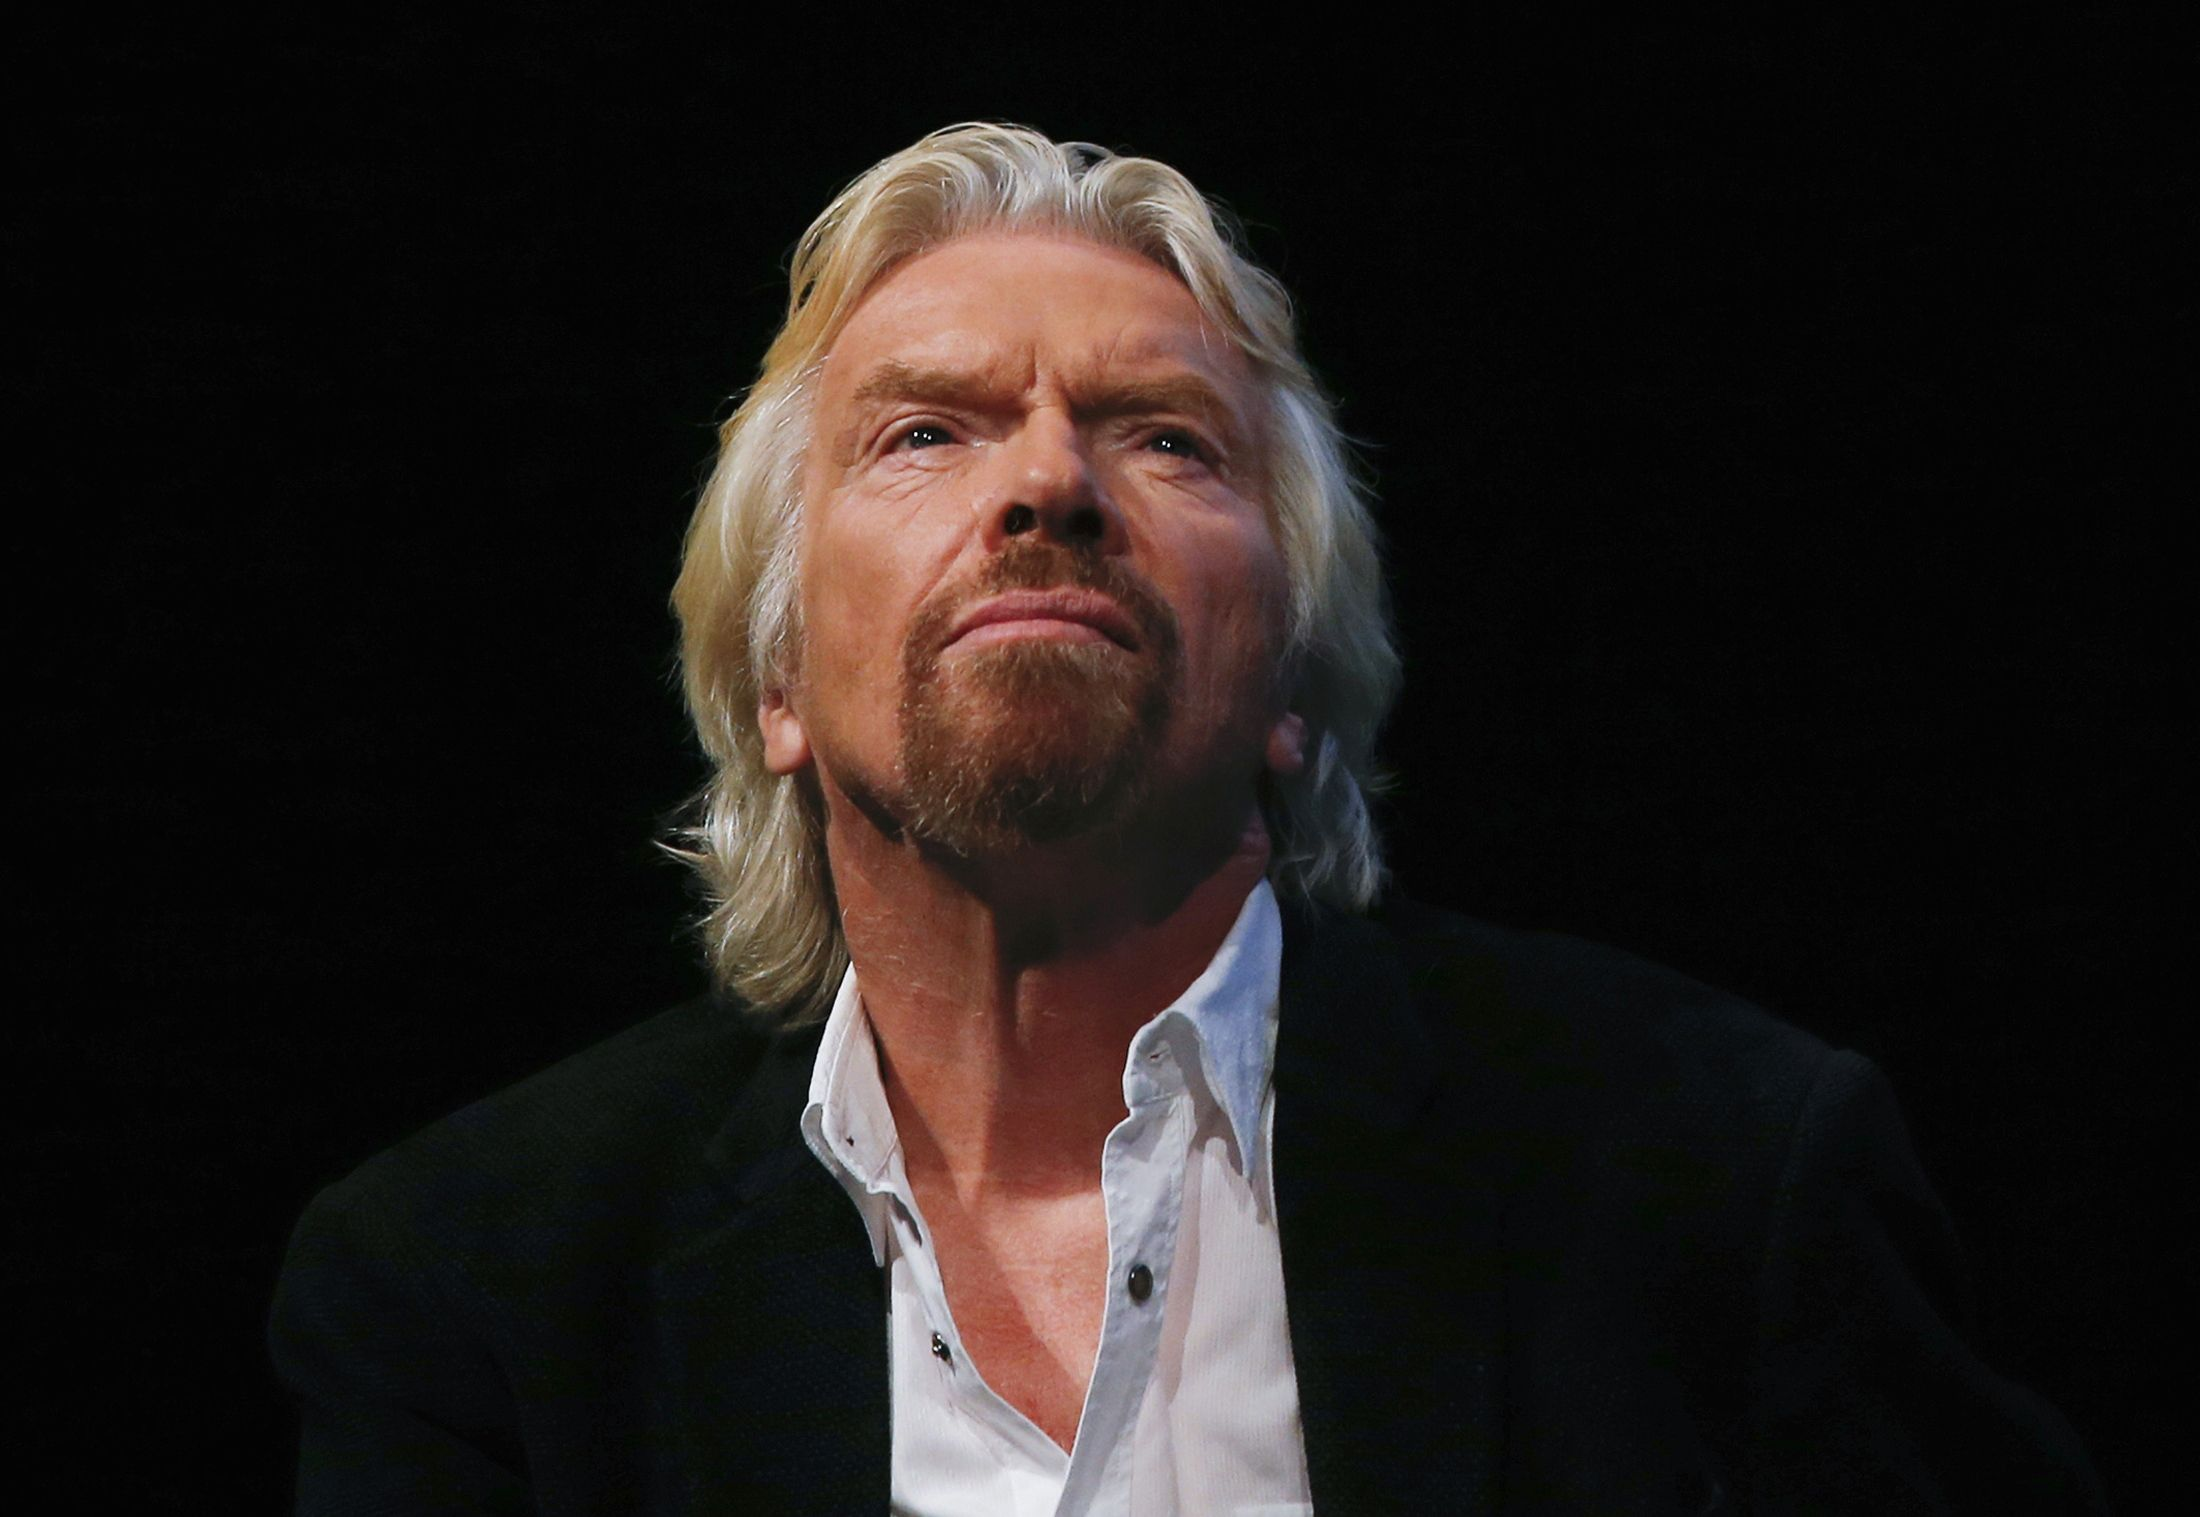 richard branson - photo #22